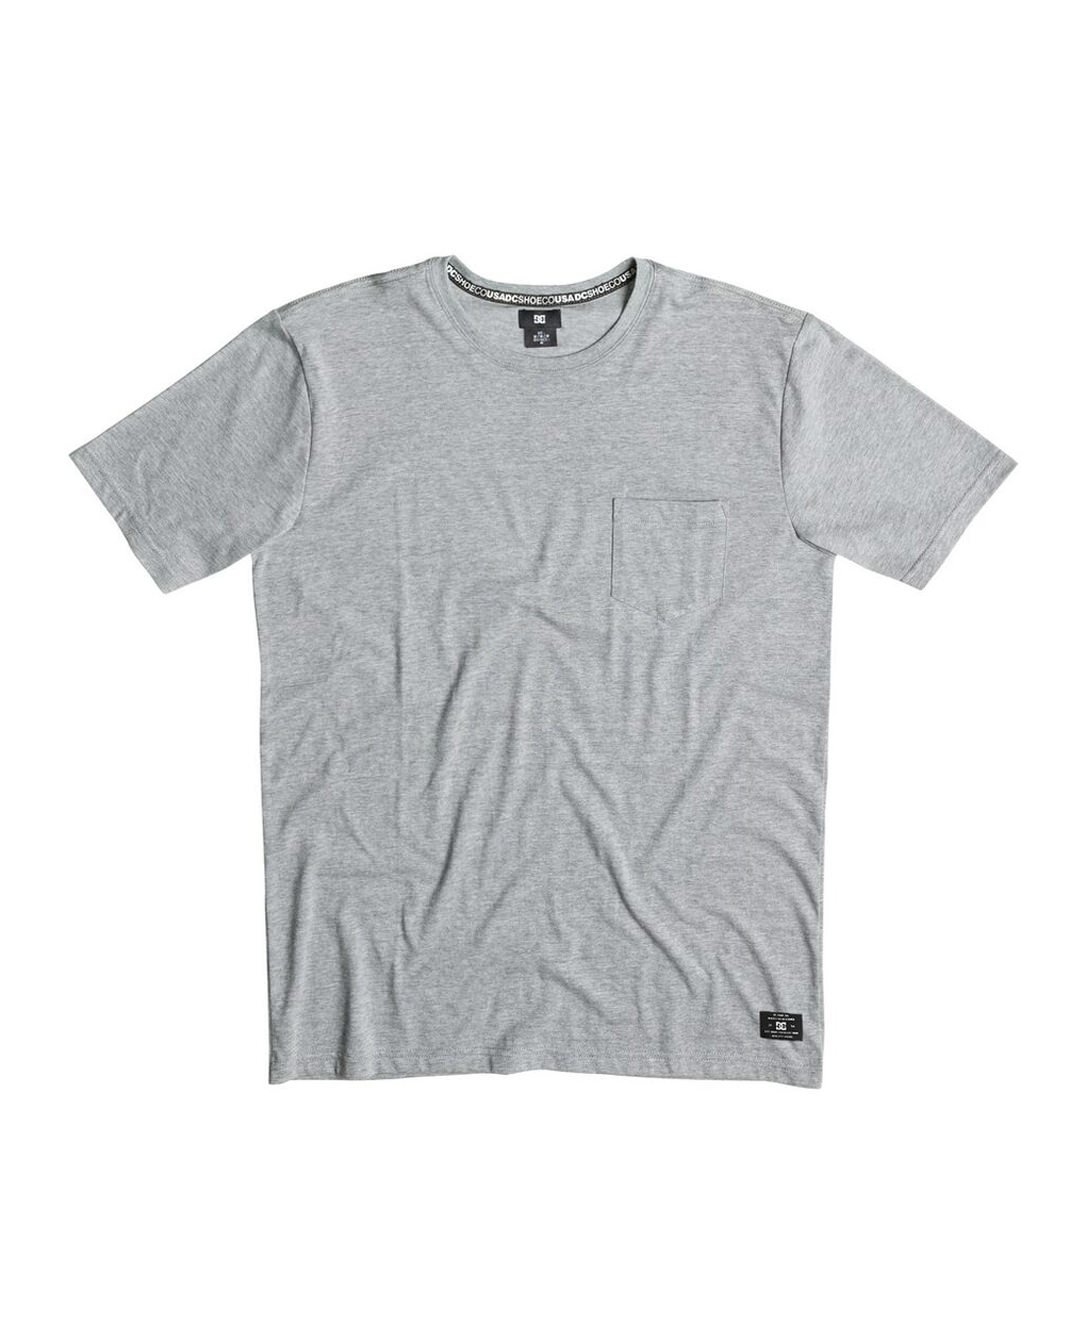 DC SHOES TSHIRT POCKET KNFH - LM BOARD STORE